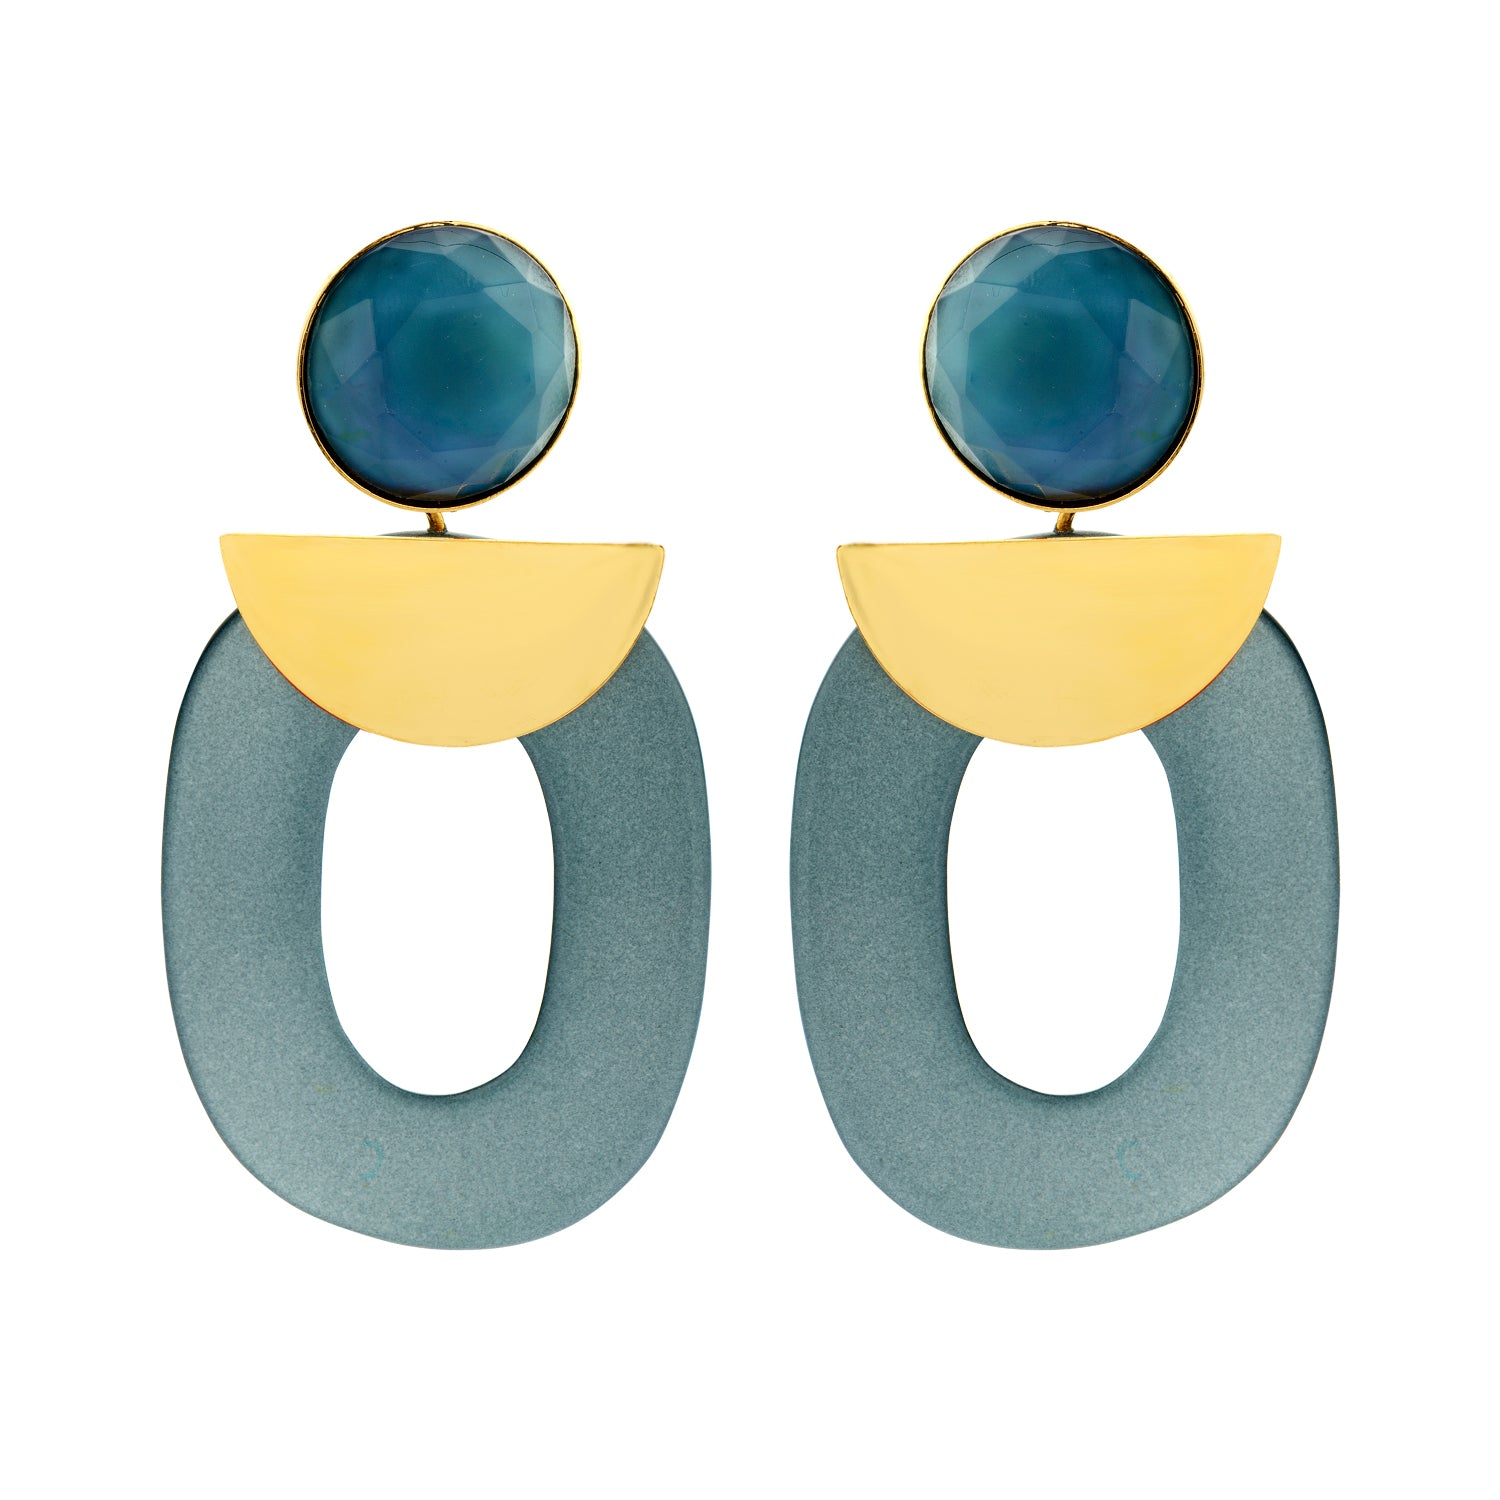 Mary large jeans earrings